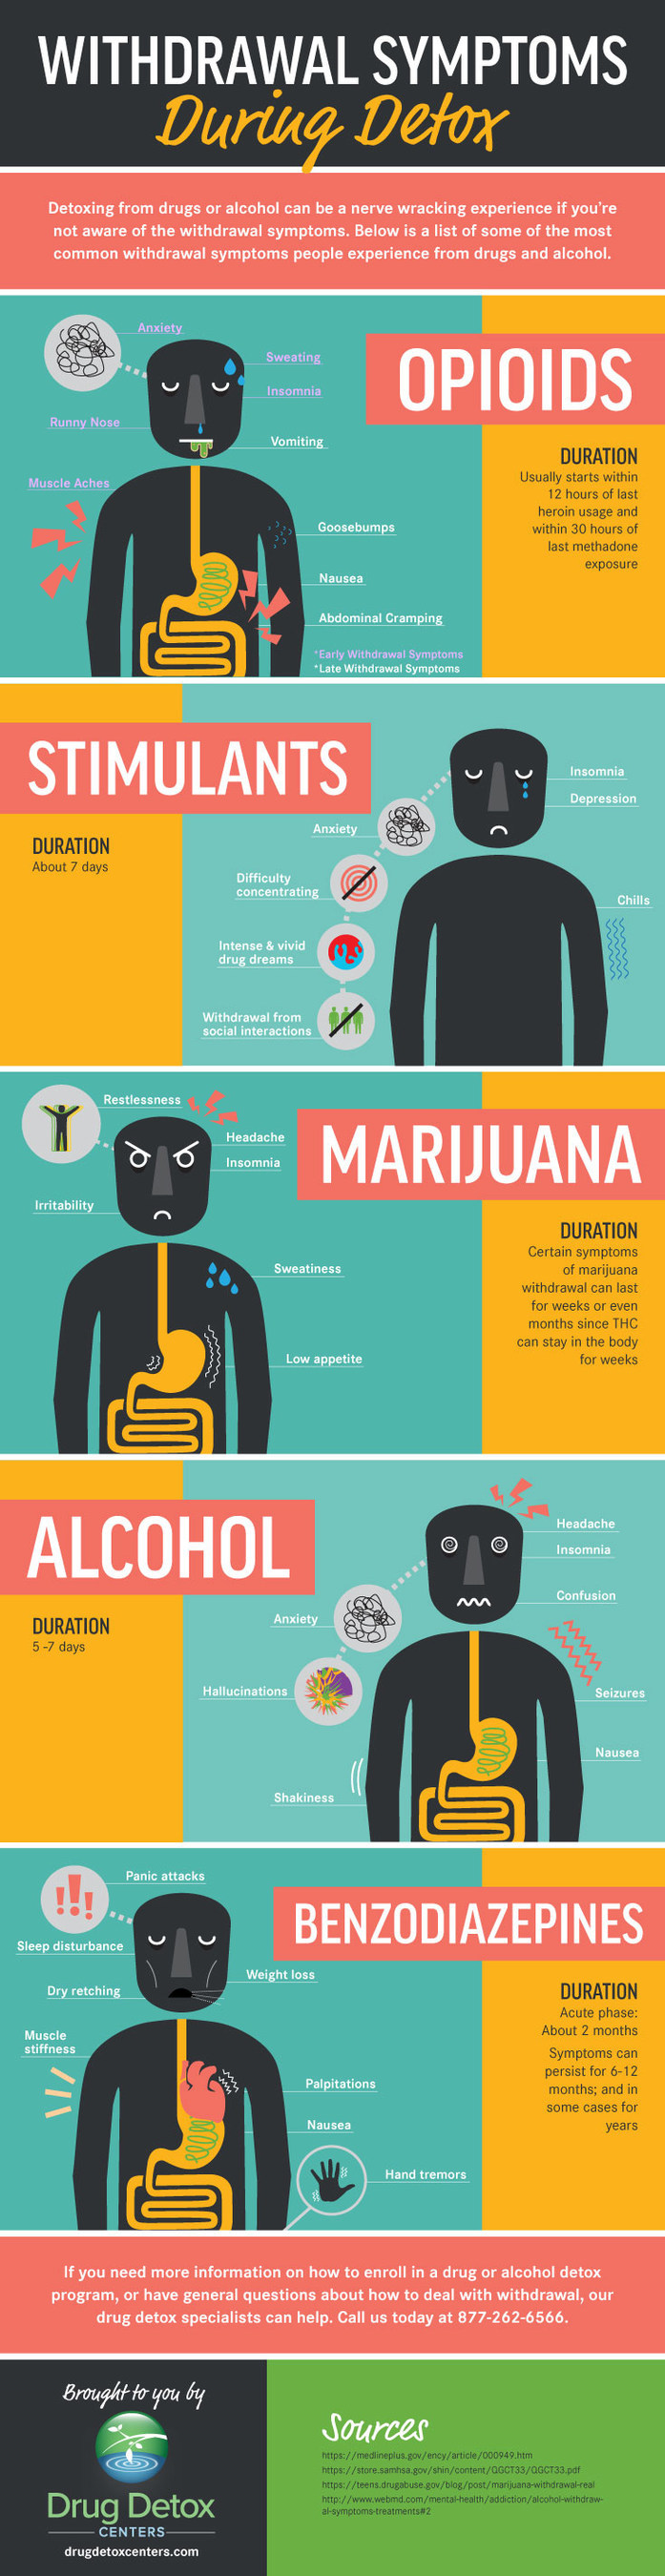 Most common drug and alcohol withdrawal symptoms individuals experience during drug or alcohol detox.